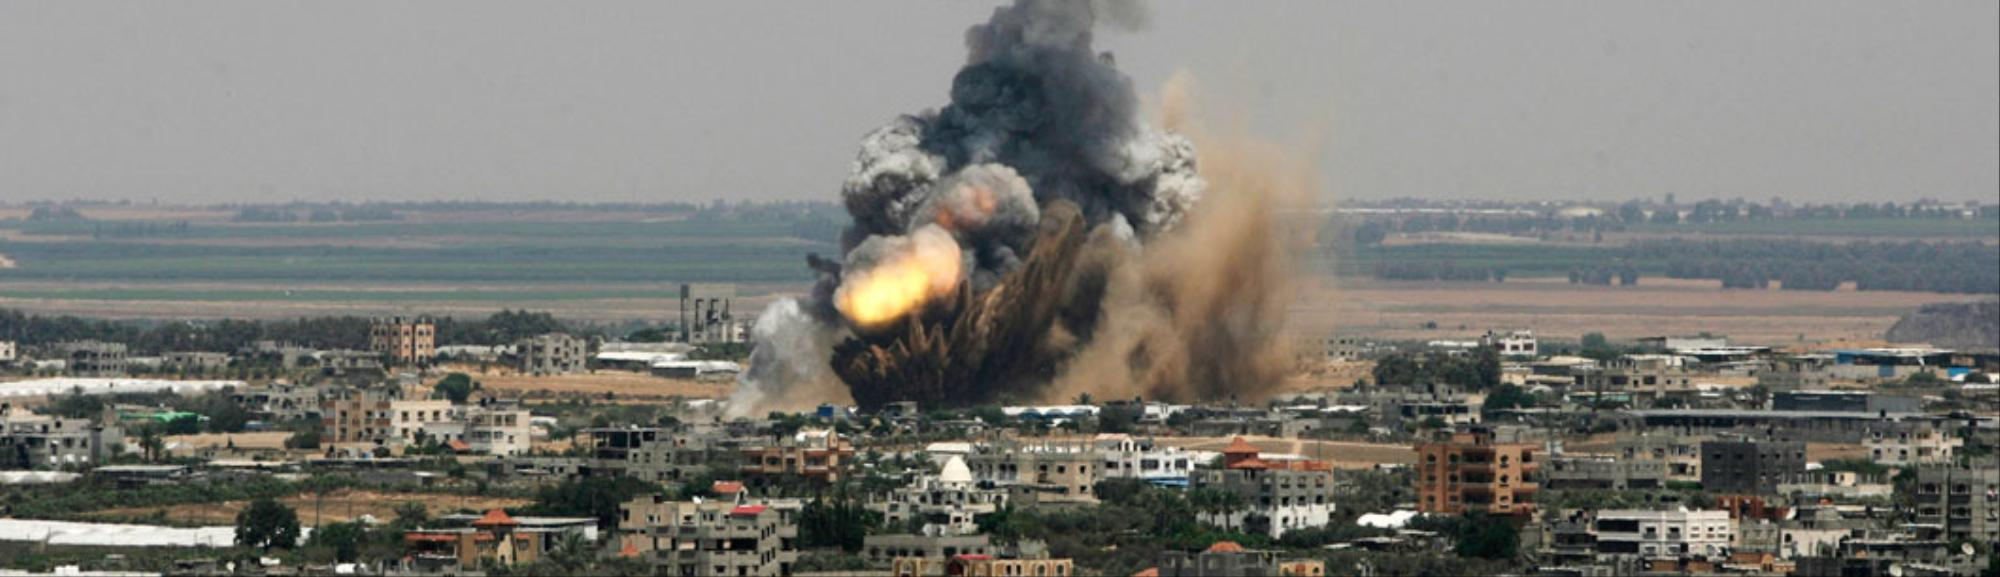 Gaza Fears the Worst as Israel Ramps Up Armed Offensive